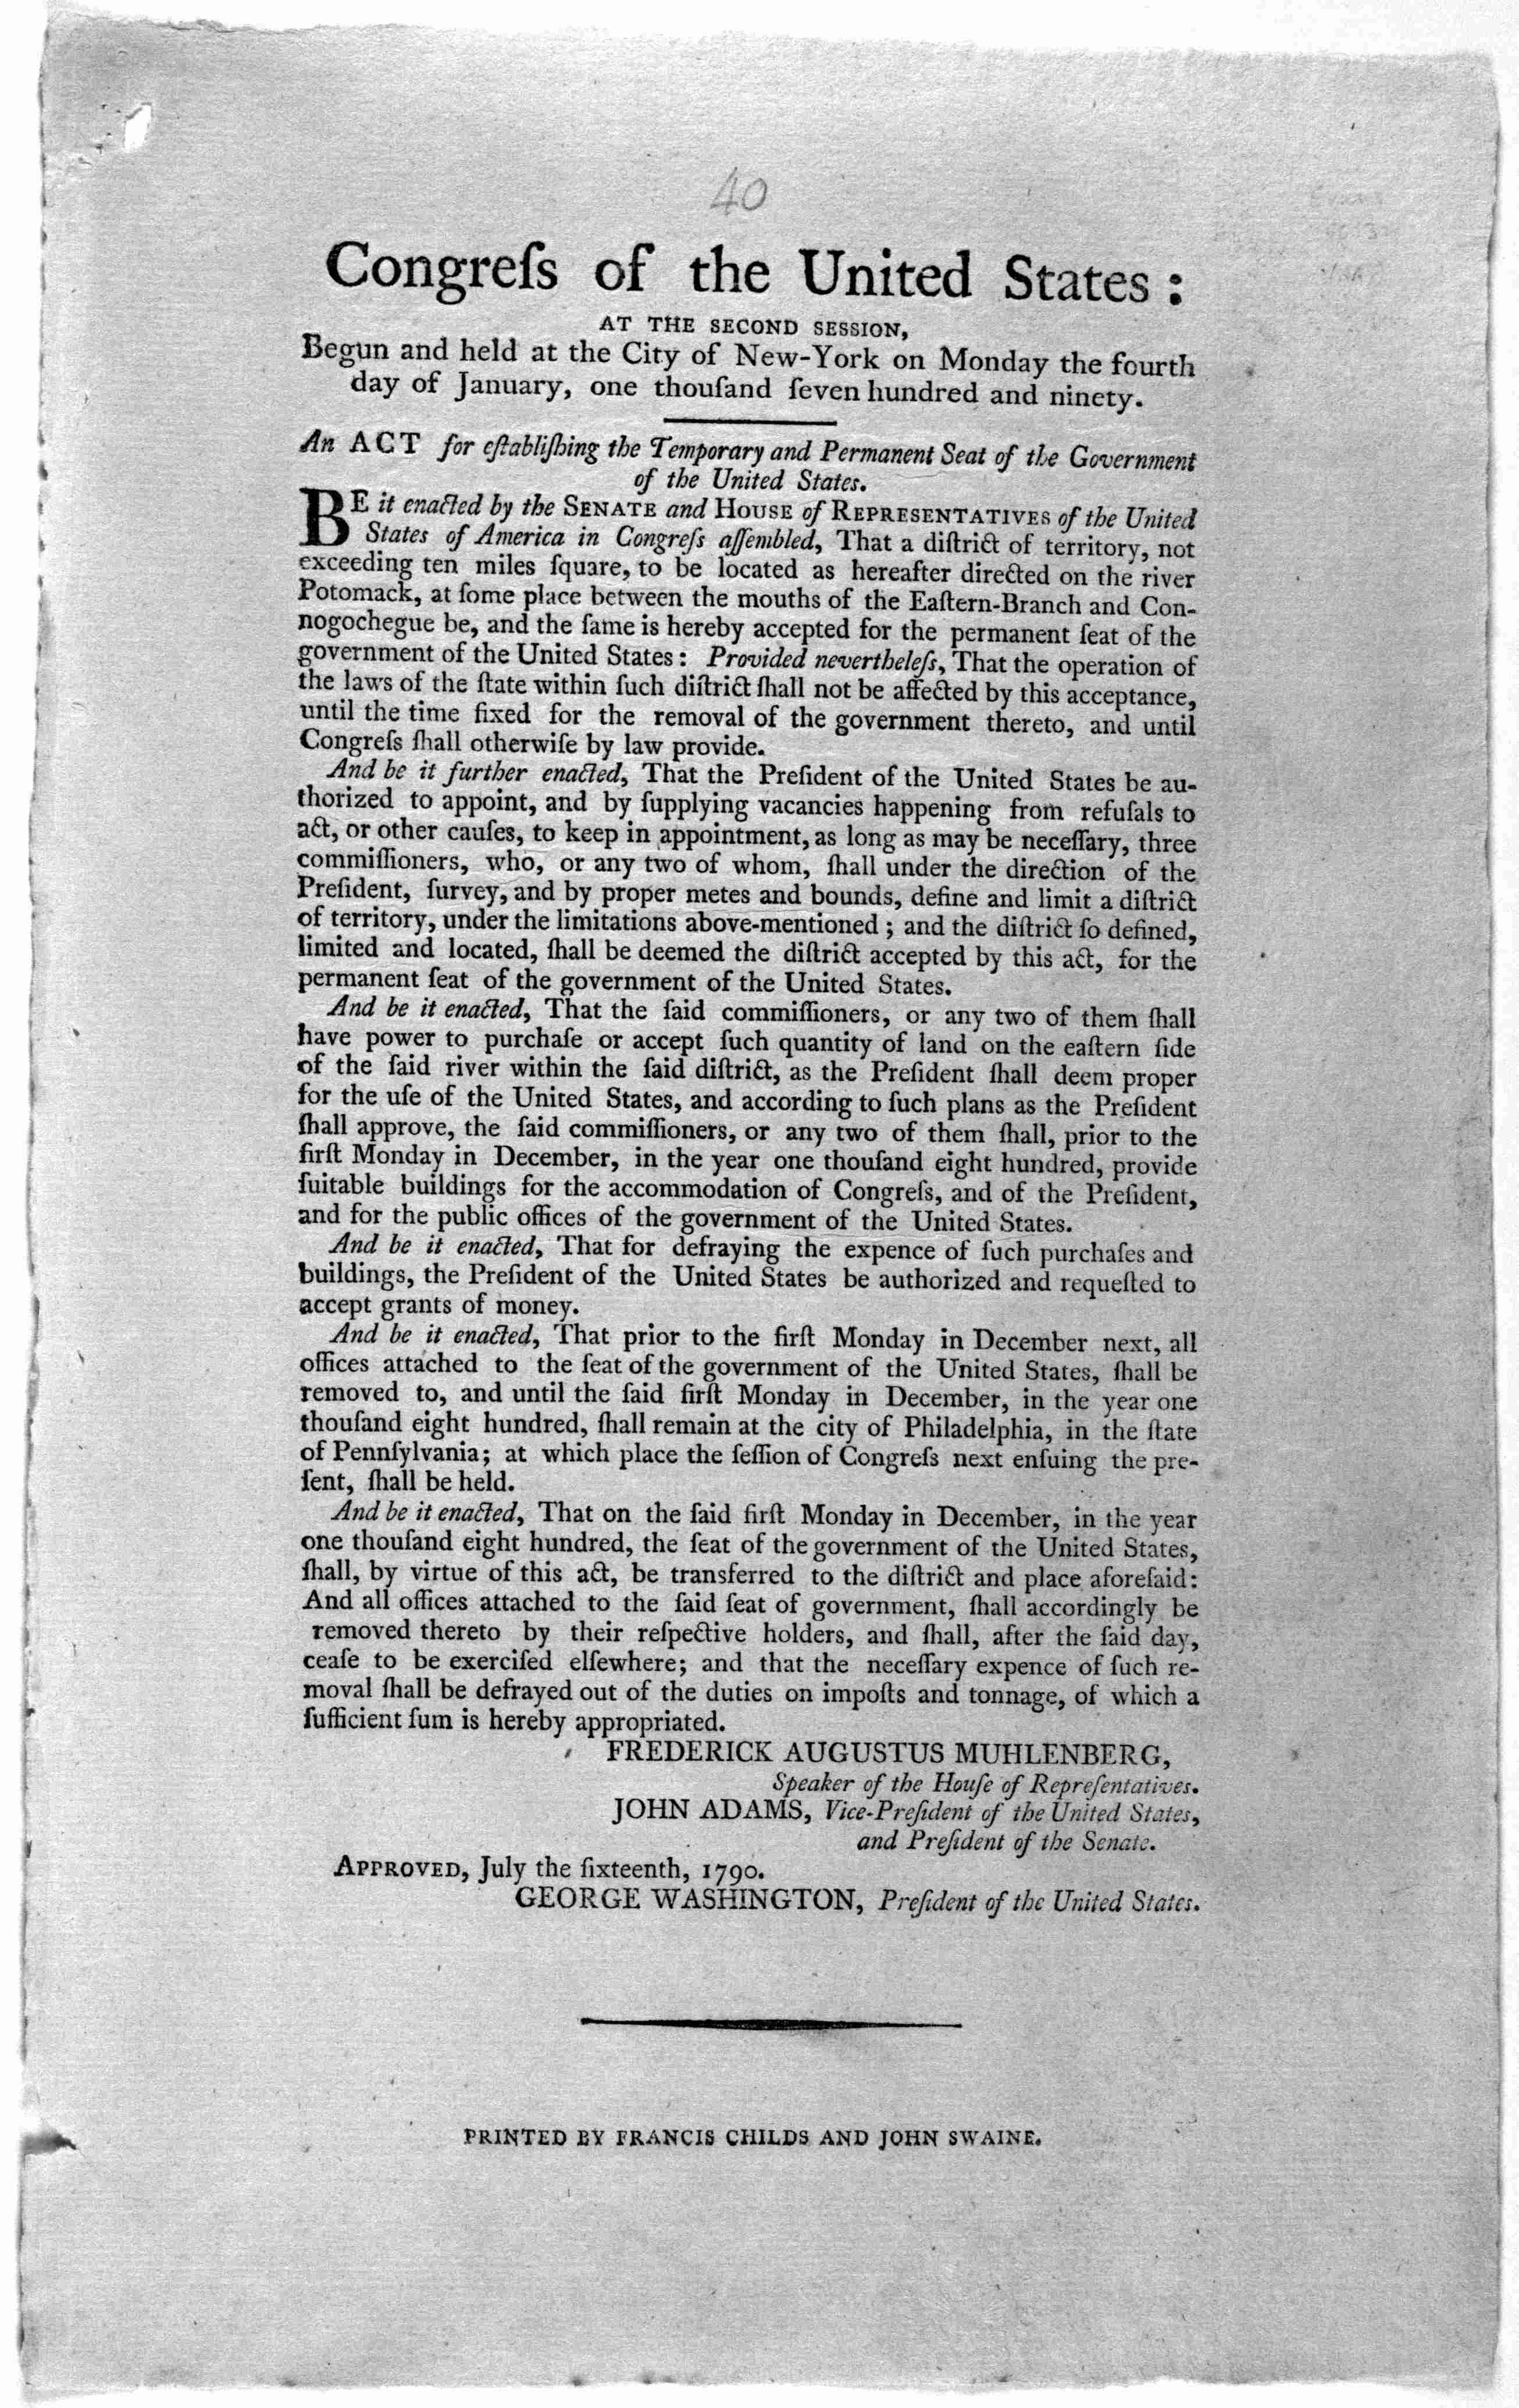 Text of the Residence Act of 1790, which established the location of the U.S. Capital along the Potomac River, along with provisions that the Federal government would assume states' debts incurred during the American Revolutionary War.